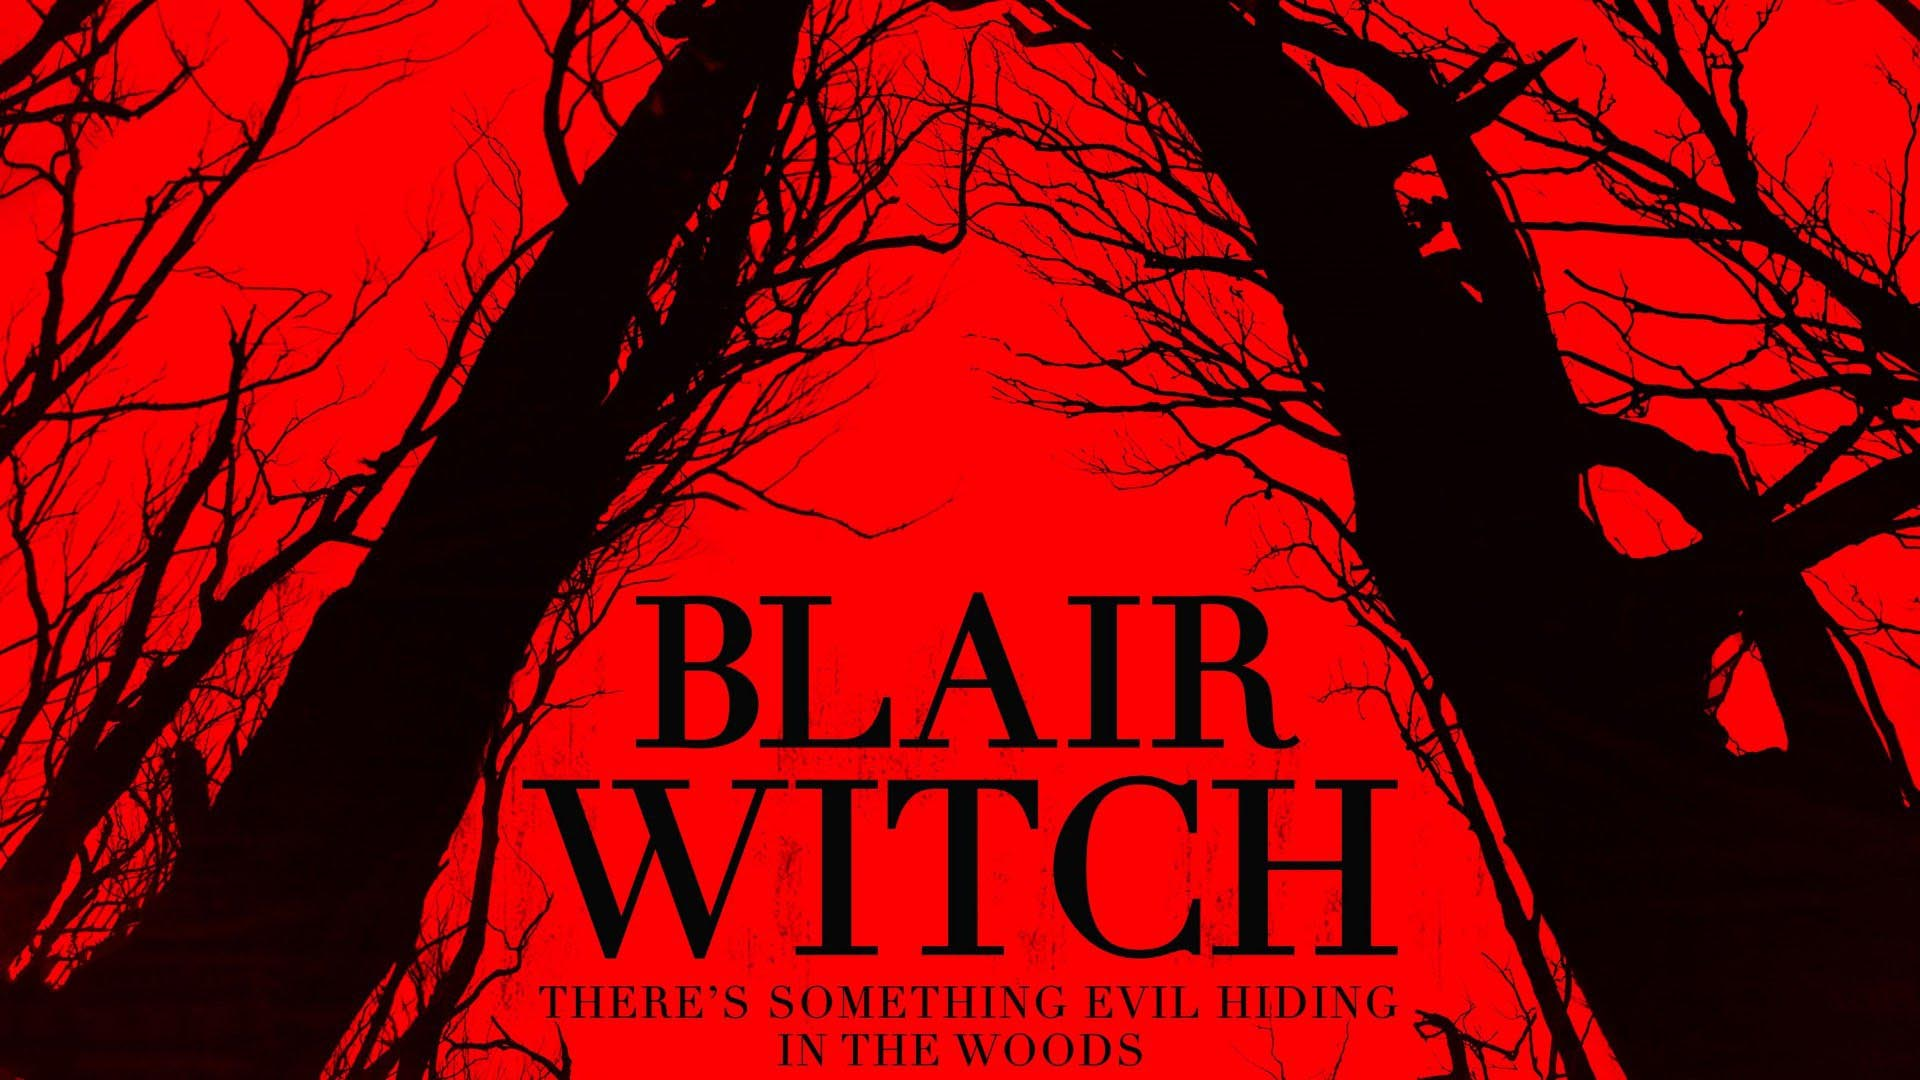 blair witch movie wallpaper 61625